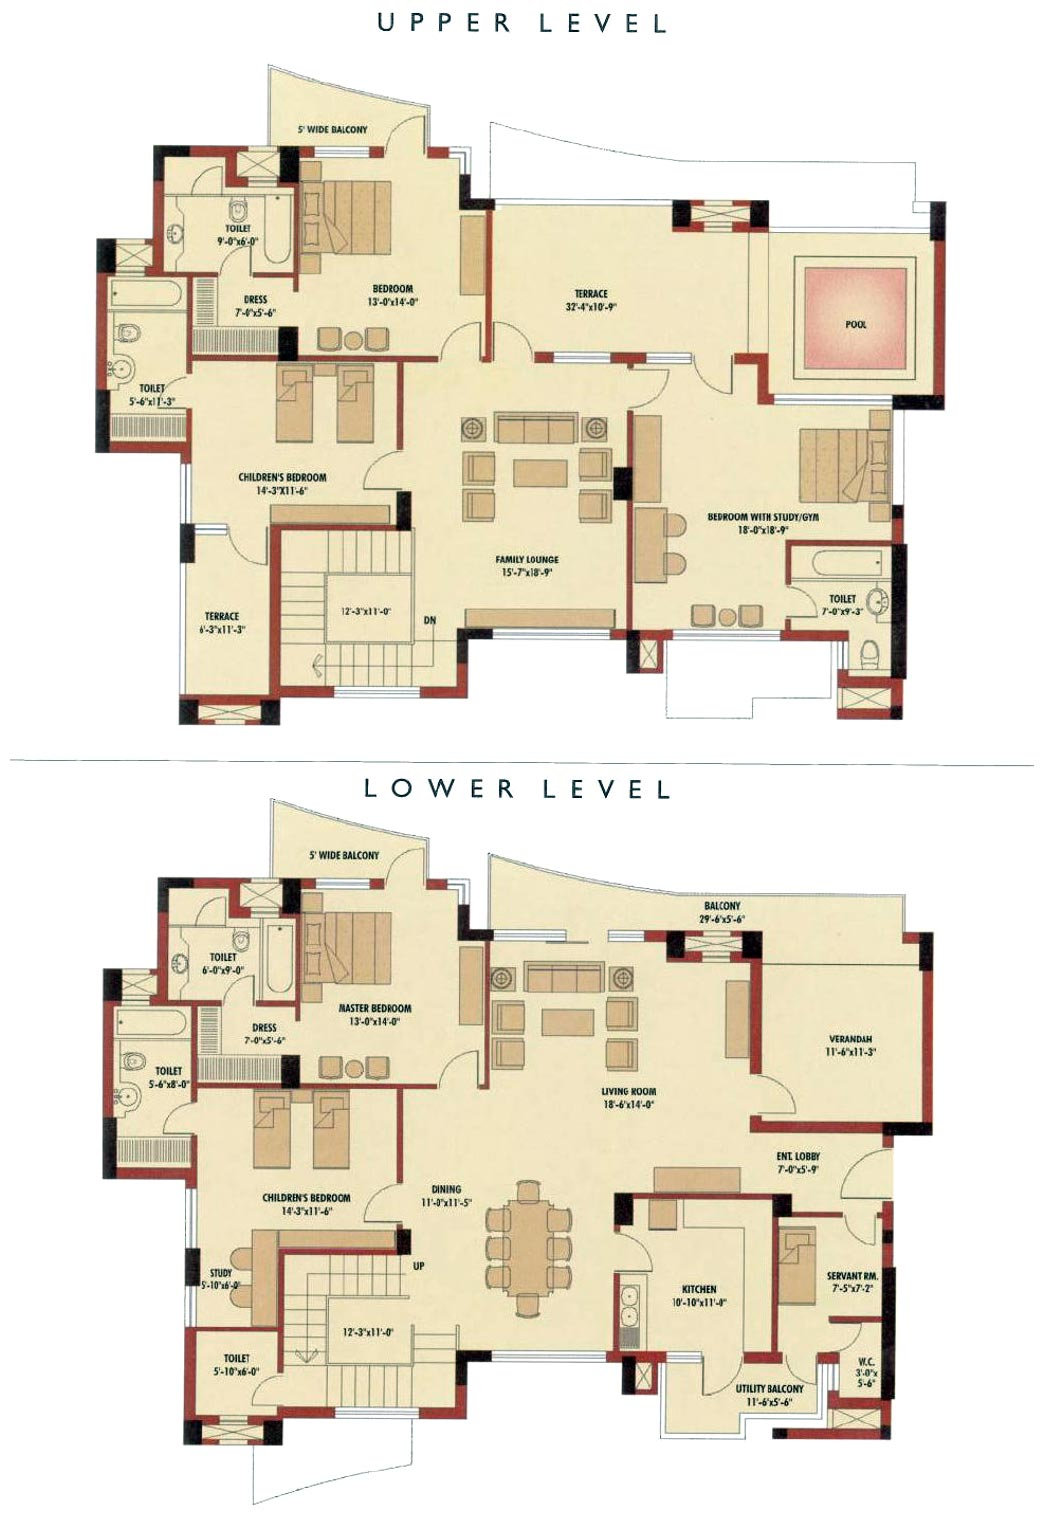 4 Bedroom Duplex Designs Plan In Nigeria Joy Studio: duplex layouts